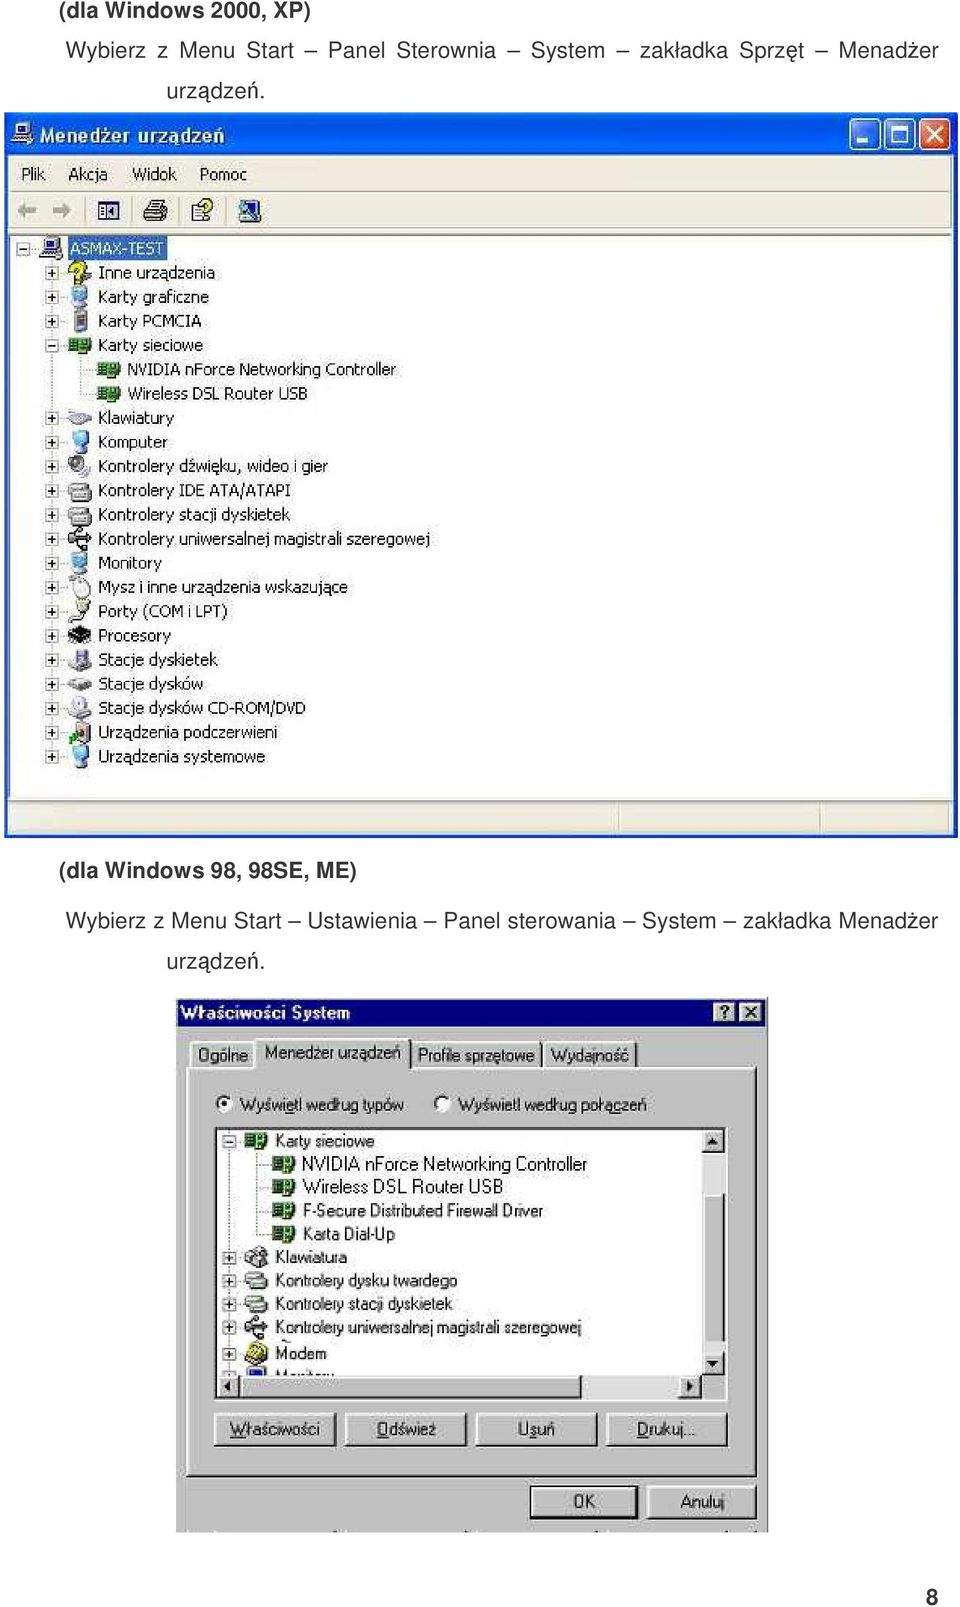 (dla Windows 98, 98SE, ME) Wybierz z Menu Start